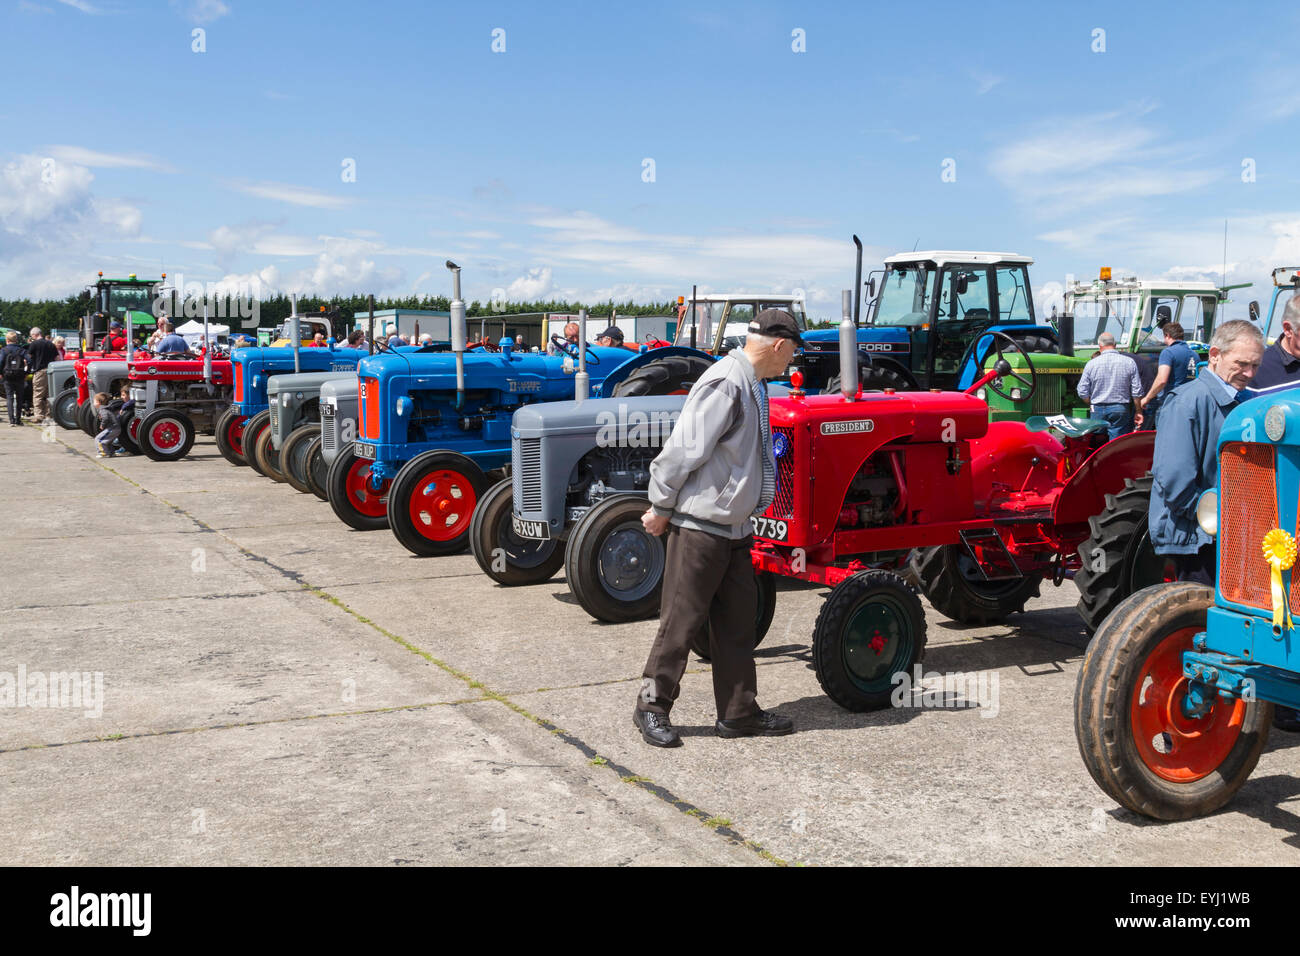 Vintage tractors enclosure at the 2015 Haddington Agricultural Show - Stock Image